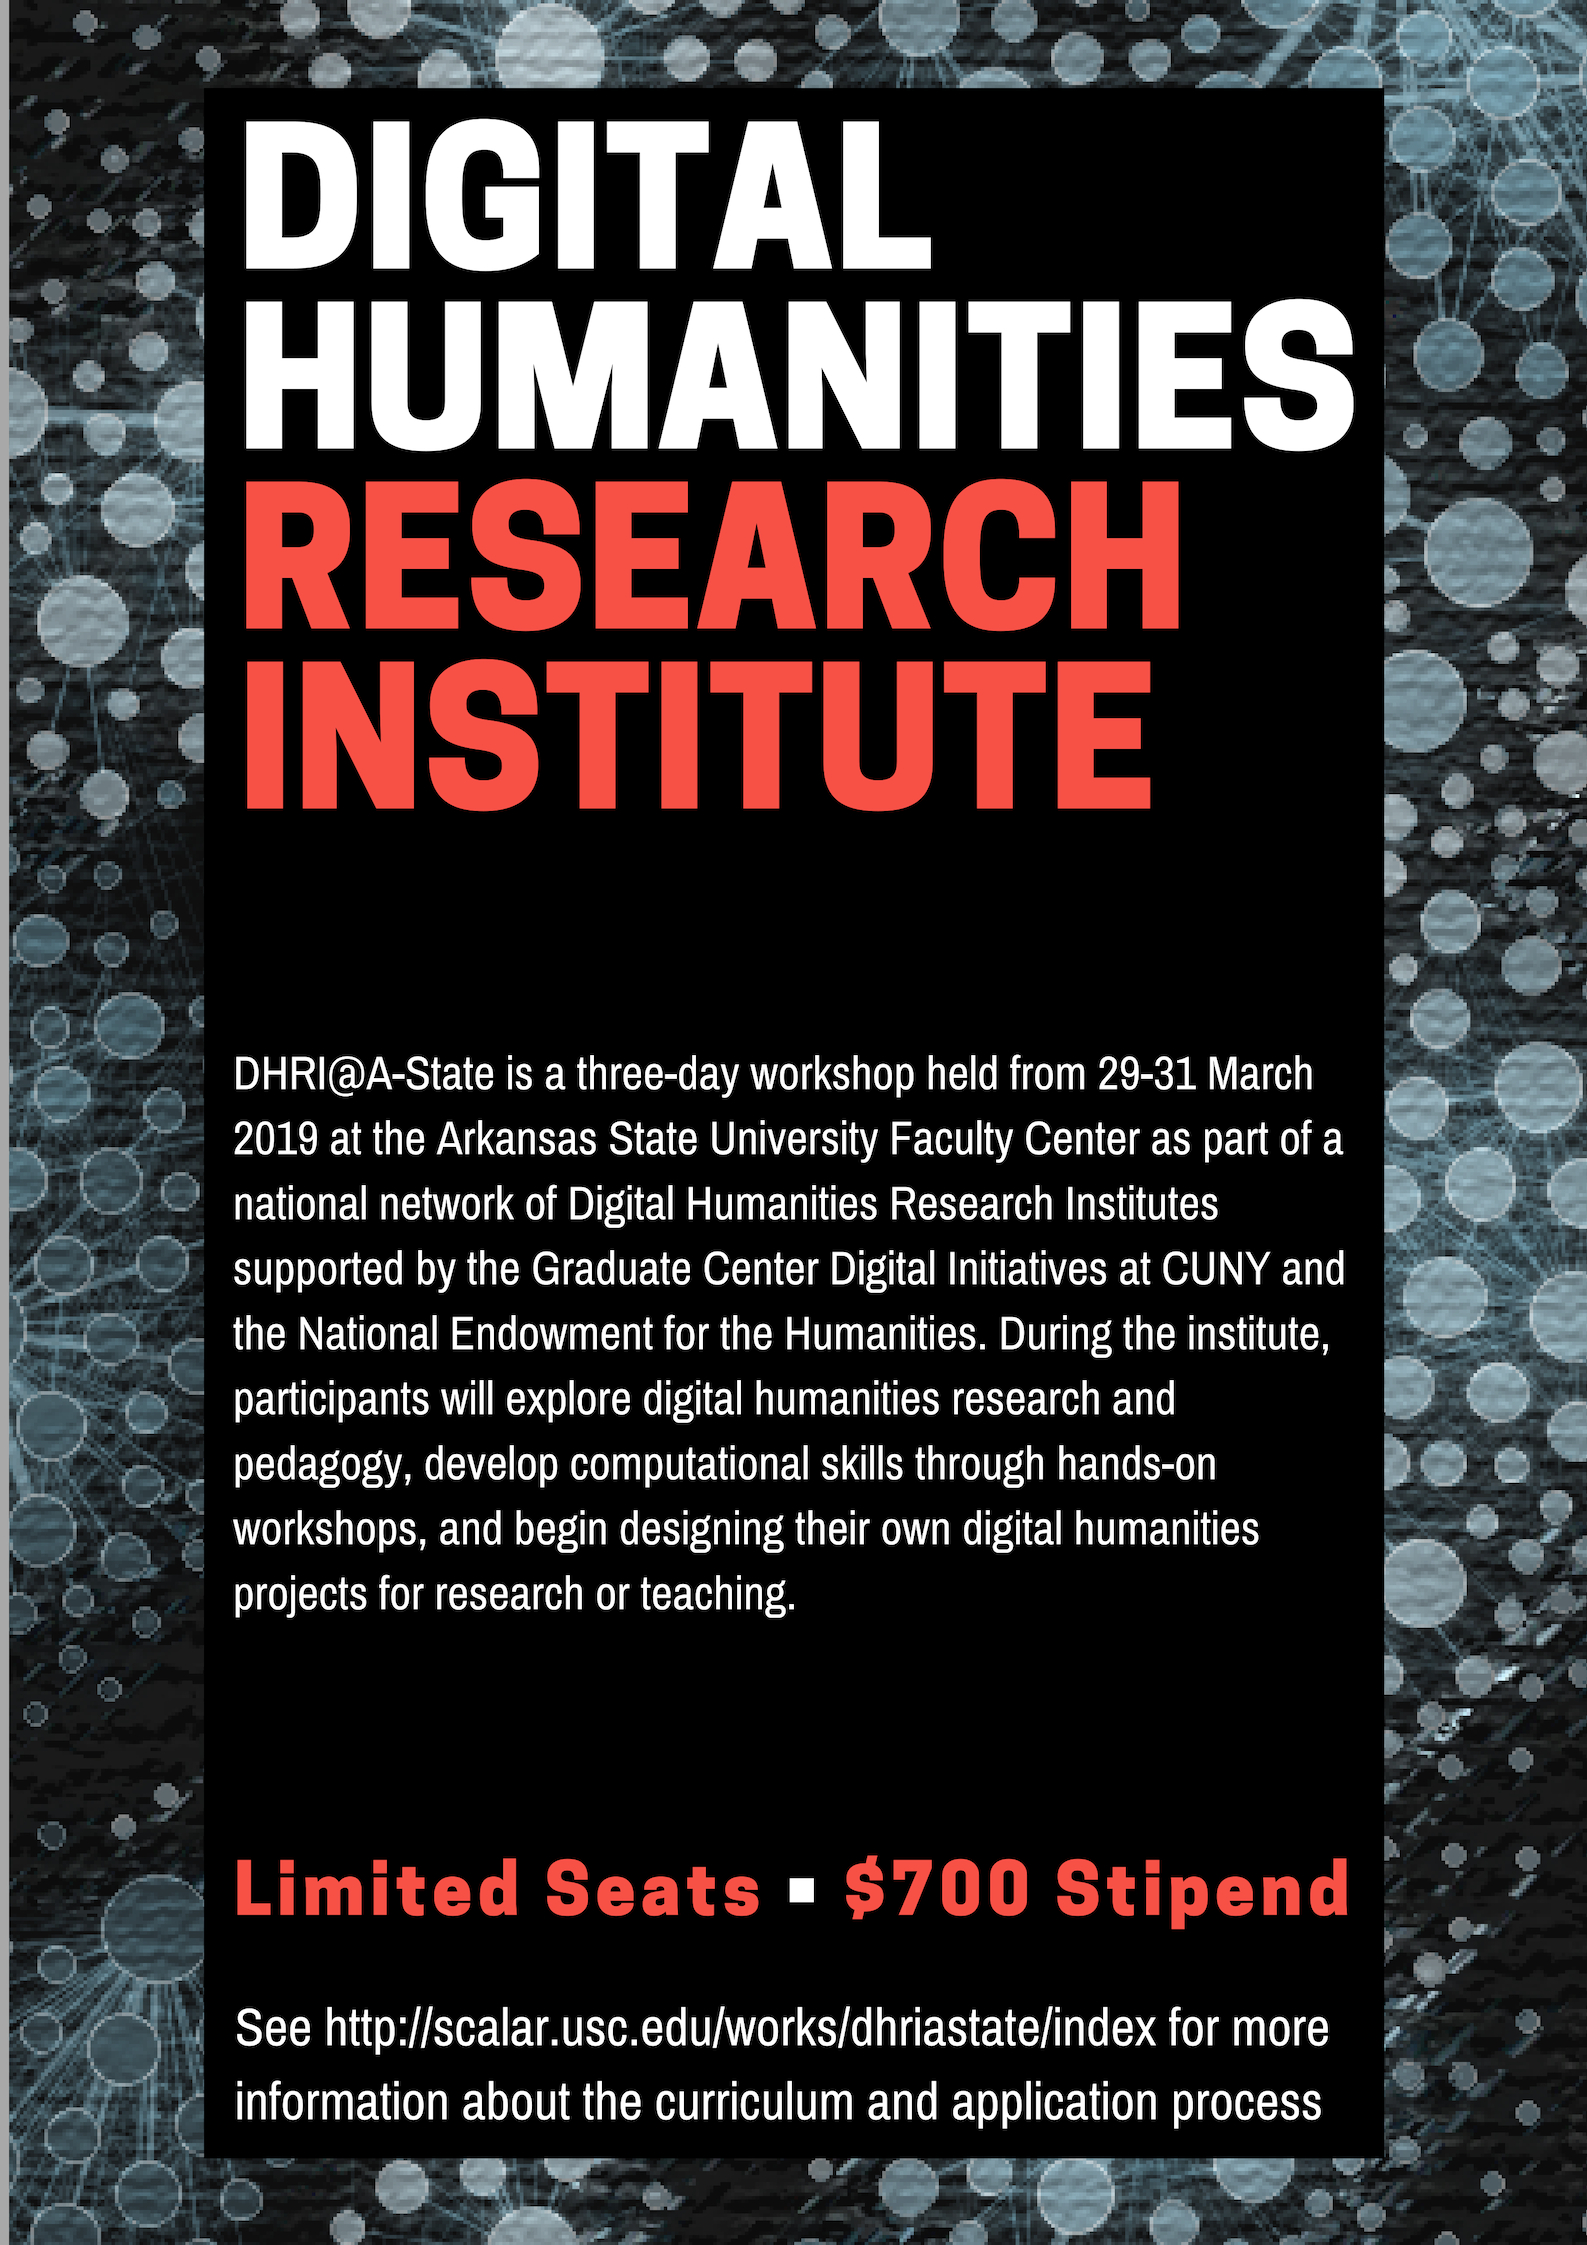 Digital Humanities Research Institute flyer